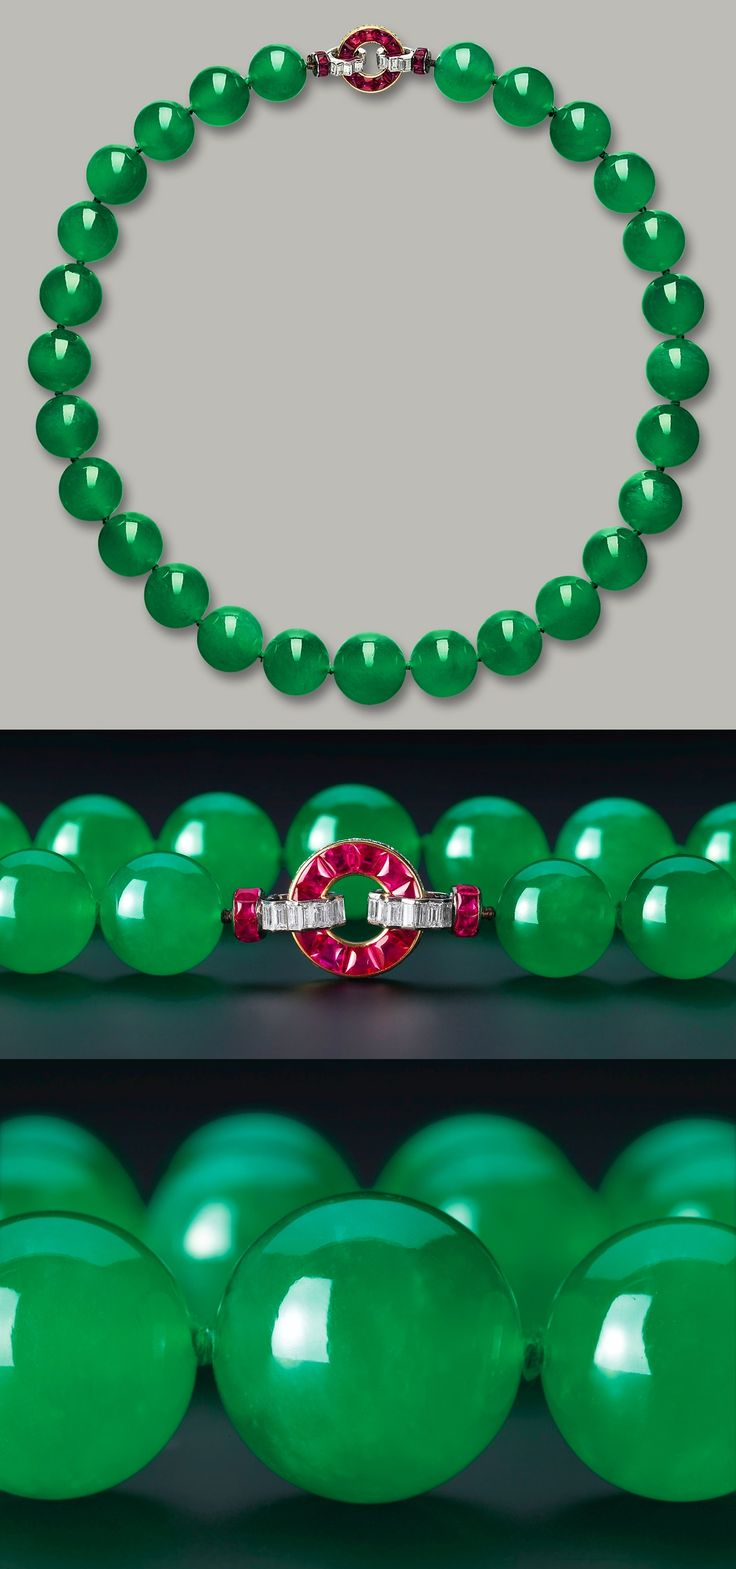 The Barbara Hutton-Mdivani Cartier Jade Necklace, sold at auction in April for $27.4 million.